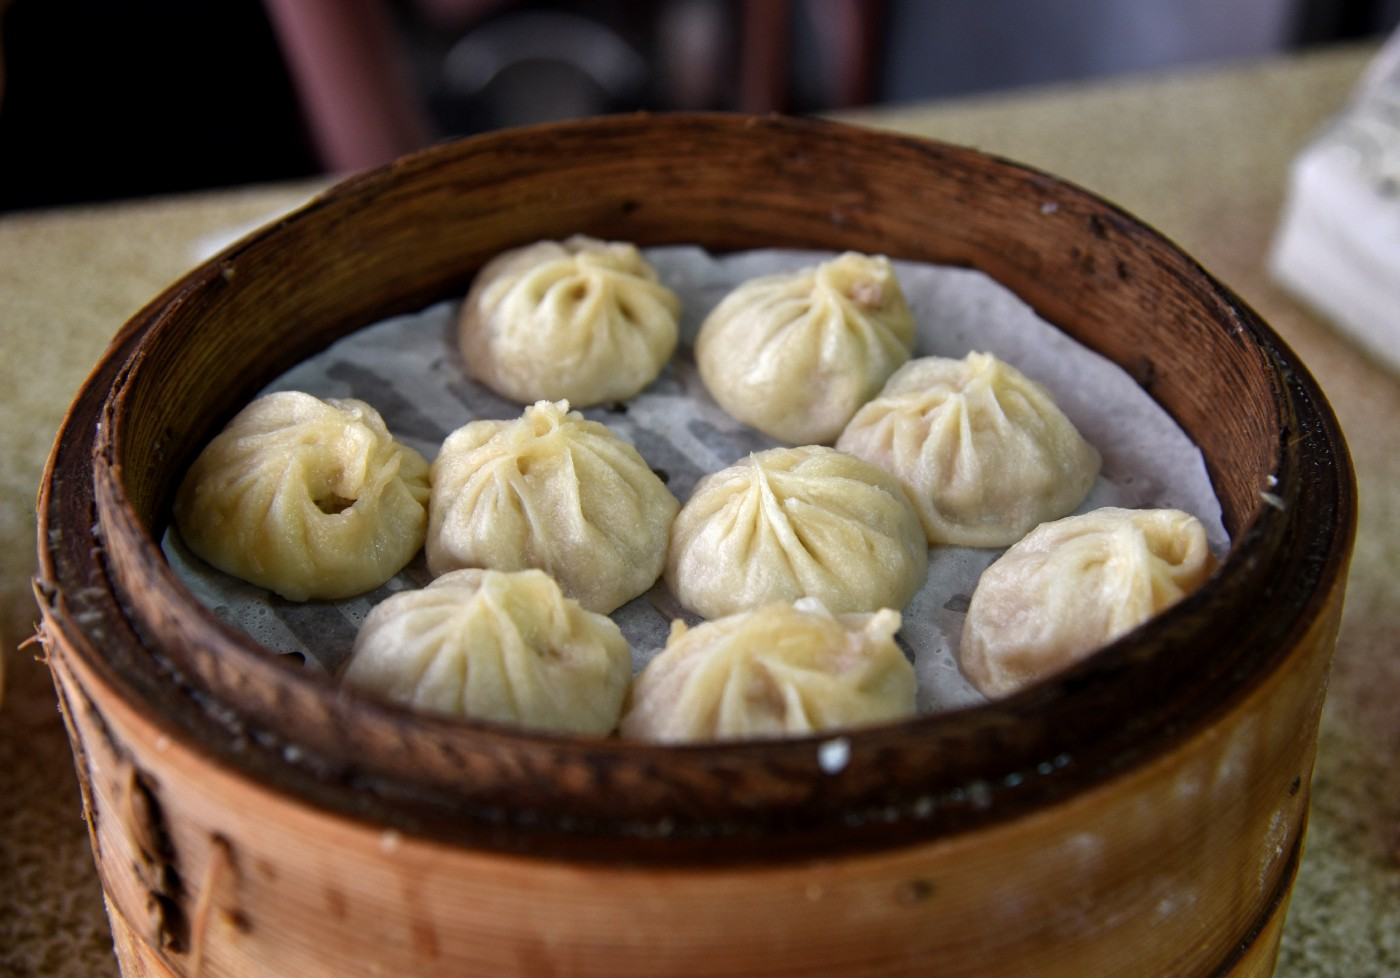 Deliciously thought-provoking soup dumplings.